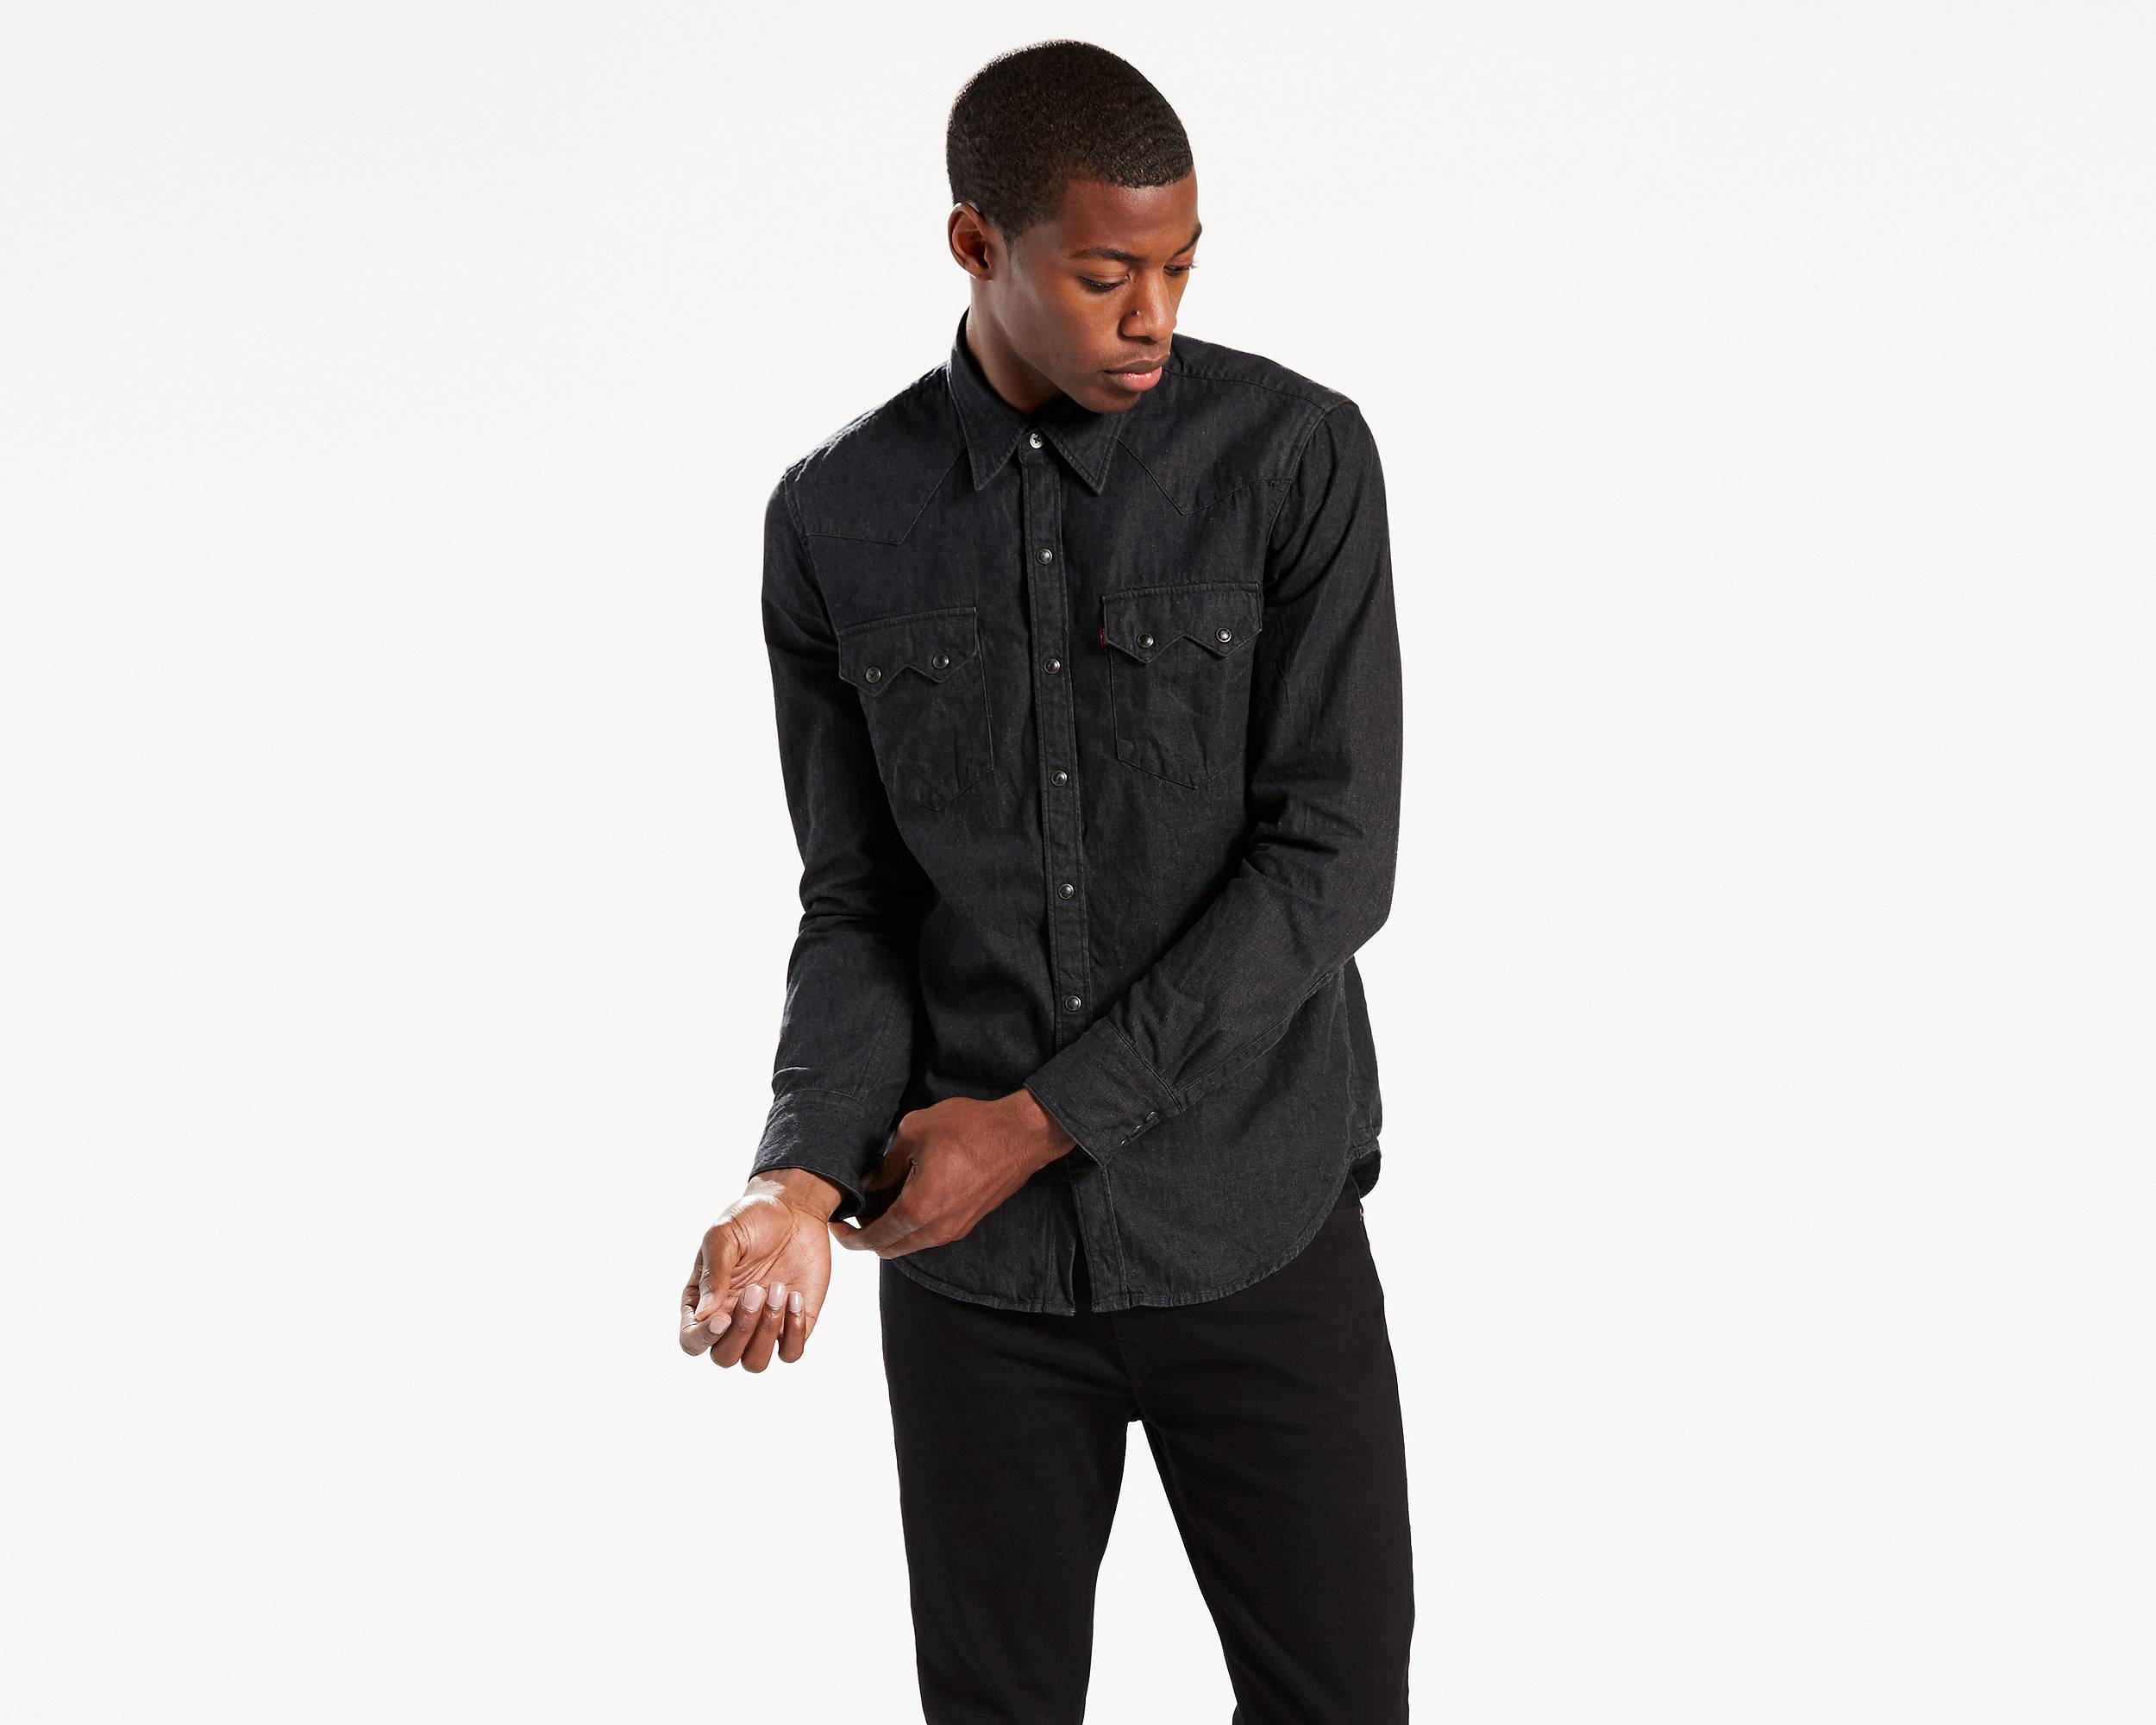 Sawtooth Western Shirt | Black |Levi's® United States (US)